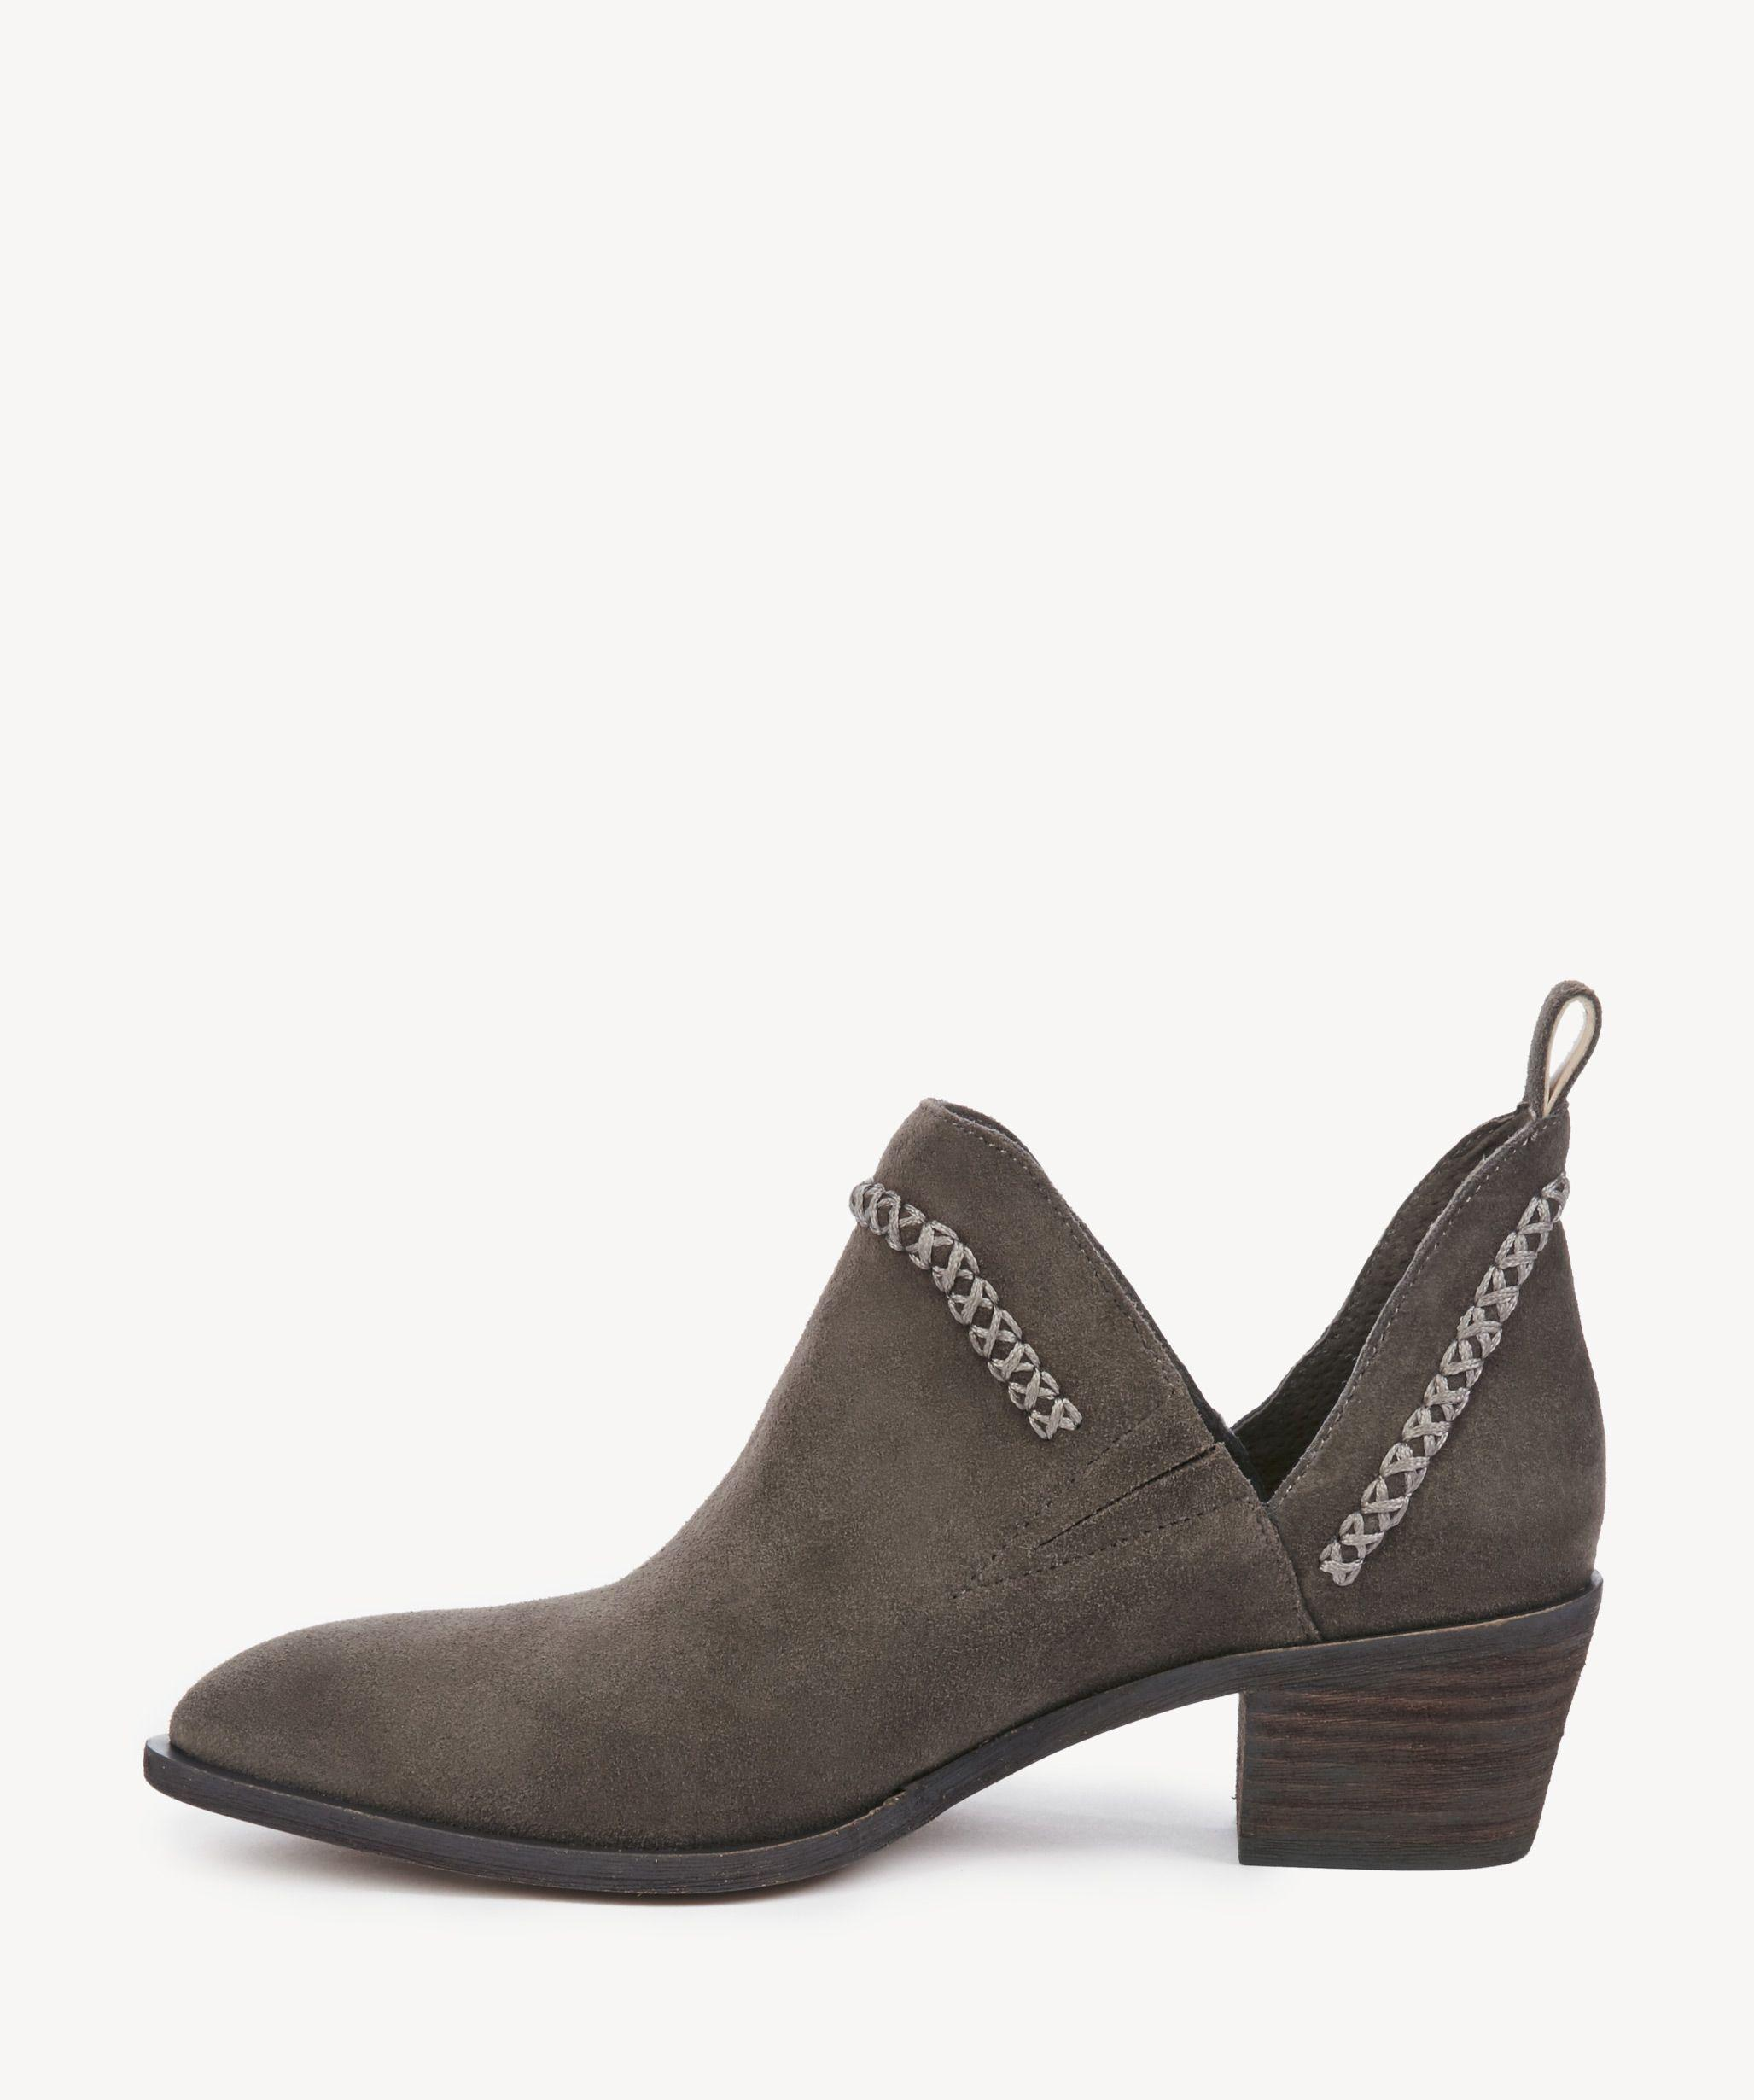 3b2625b5dc4 Lyst - Sole Society Nikkie Braided Bootie in Gray